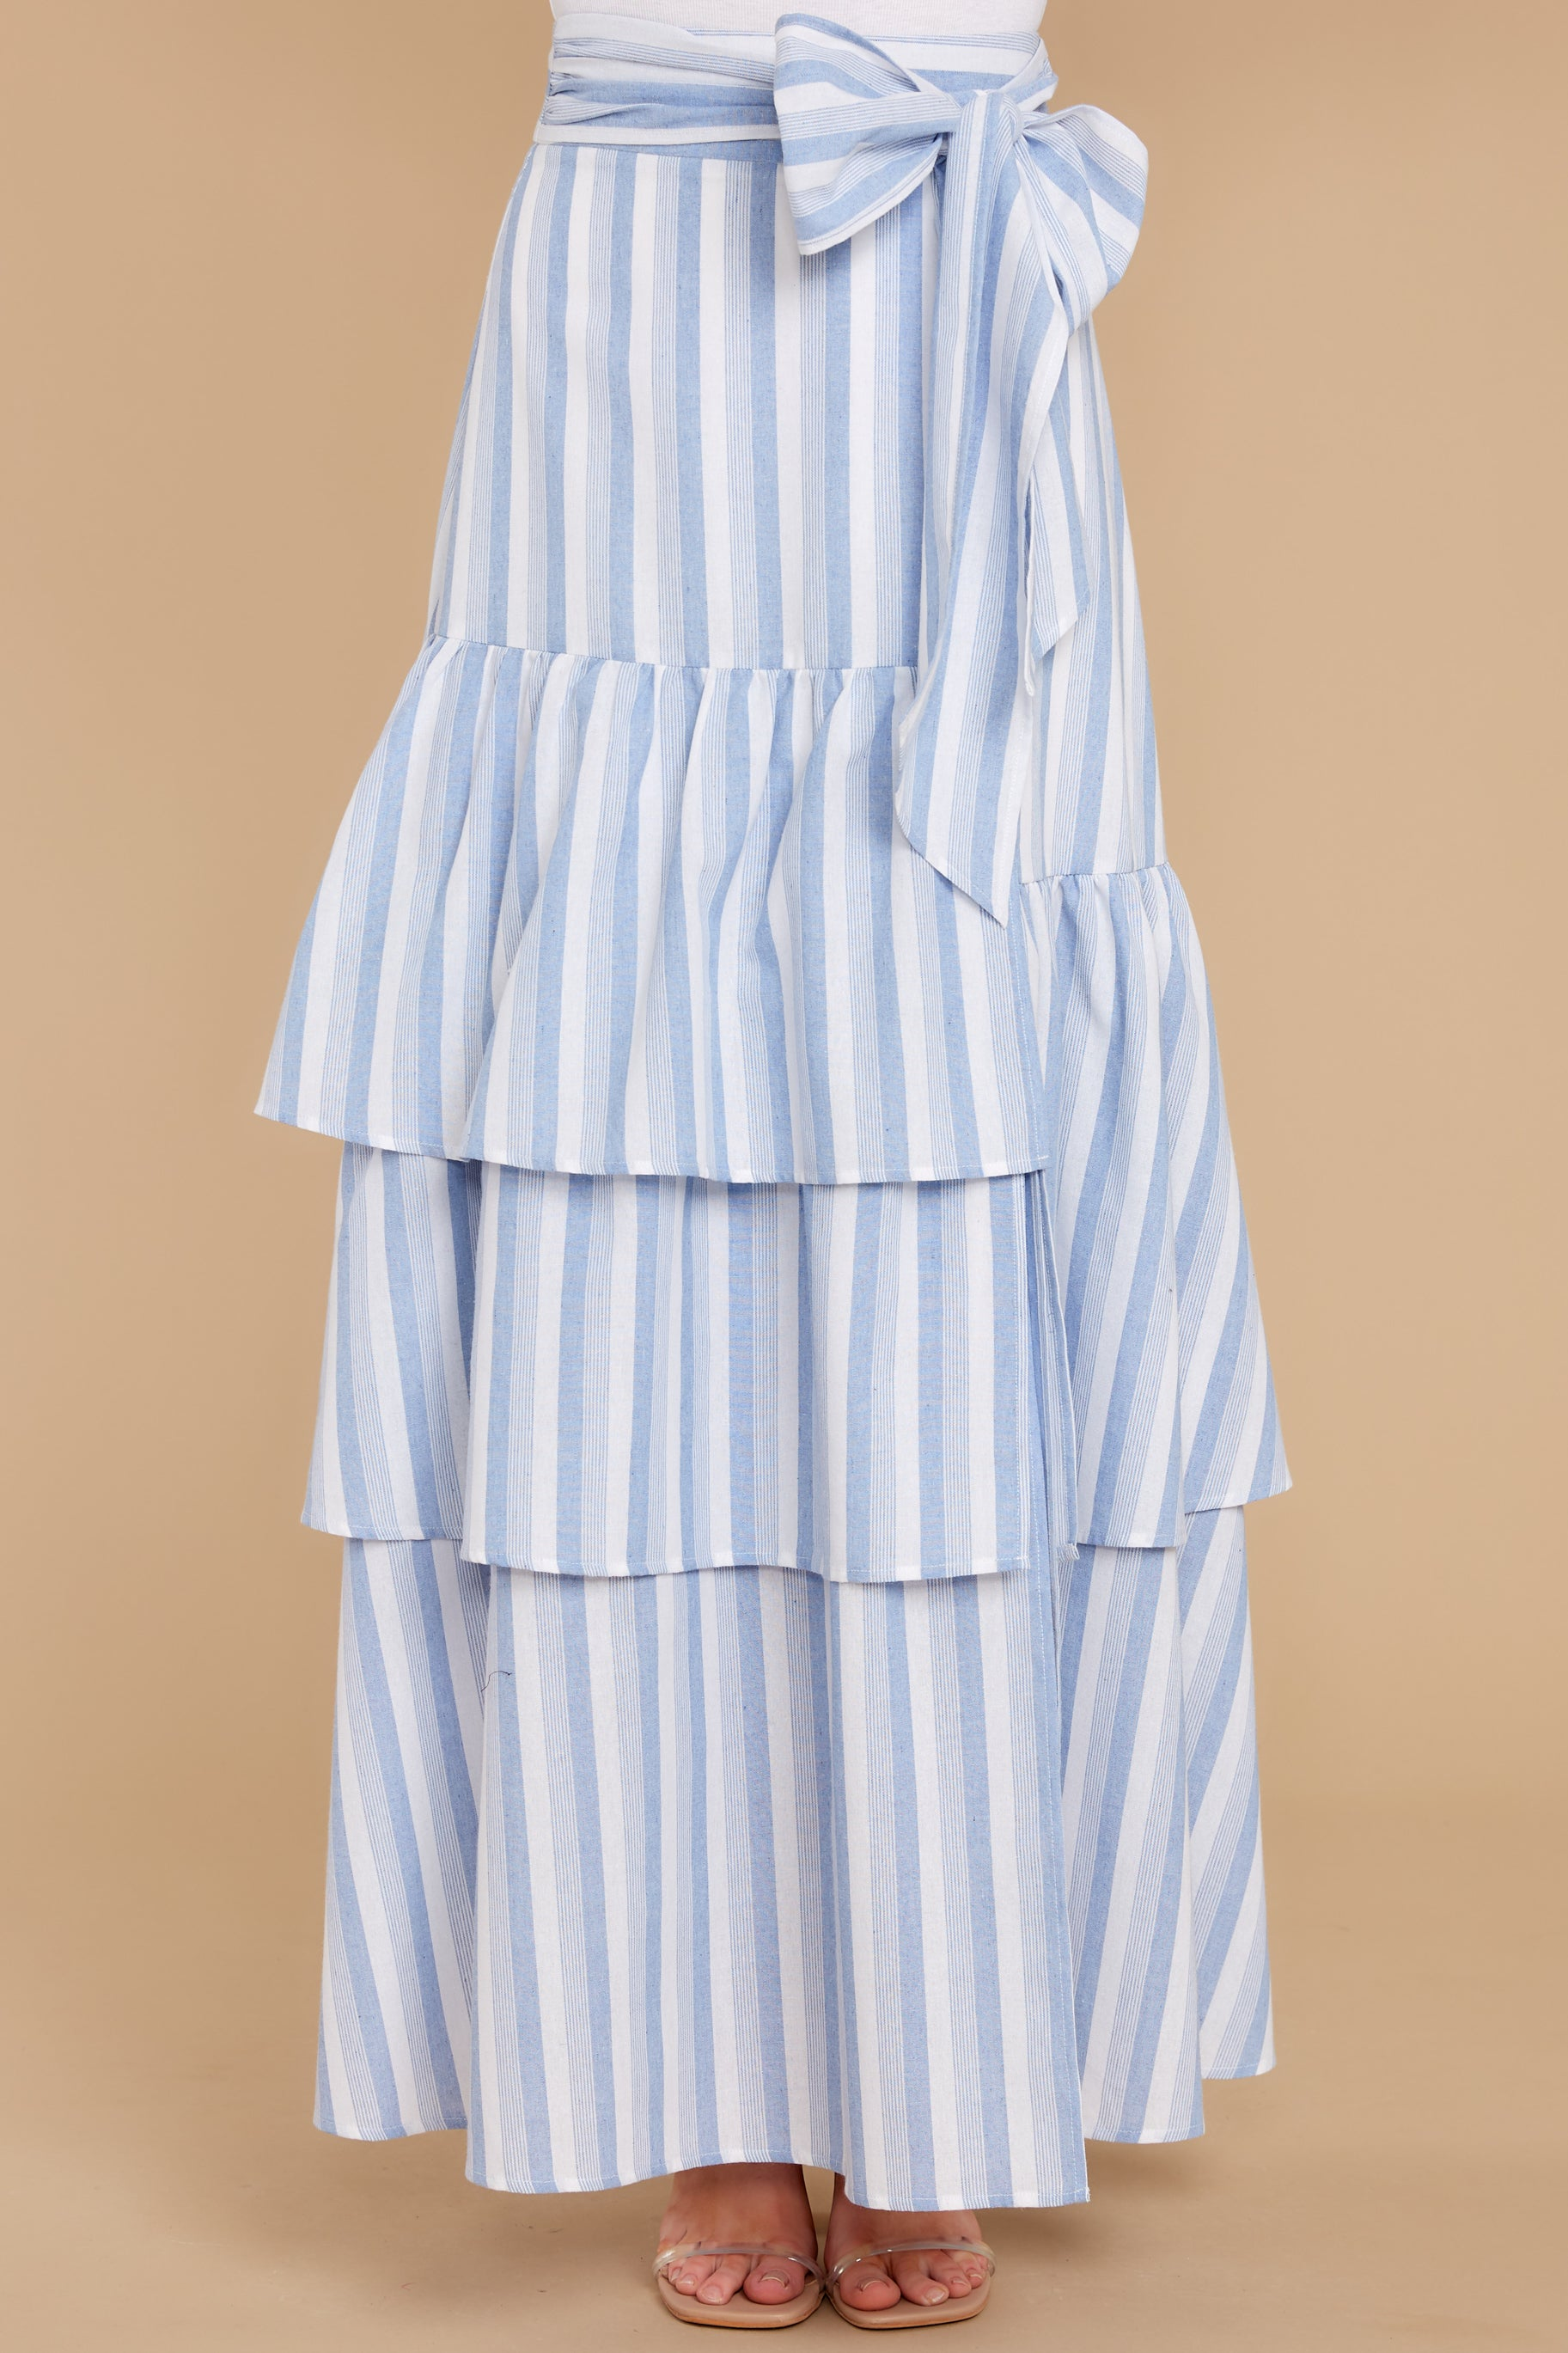 Days Away Light Blue Stripe Maxi Skirt